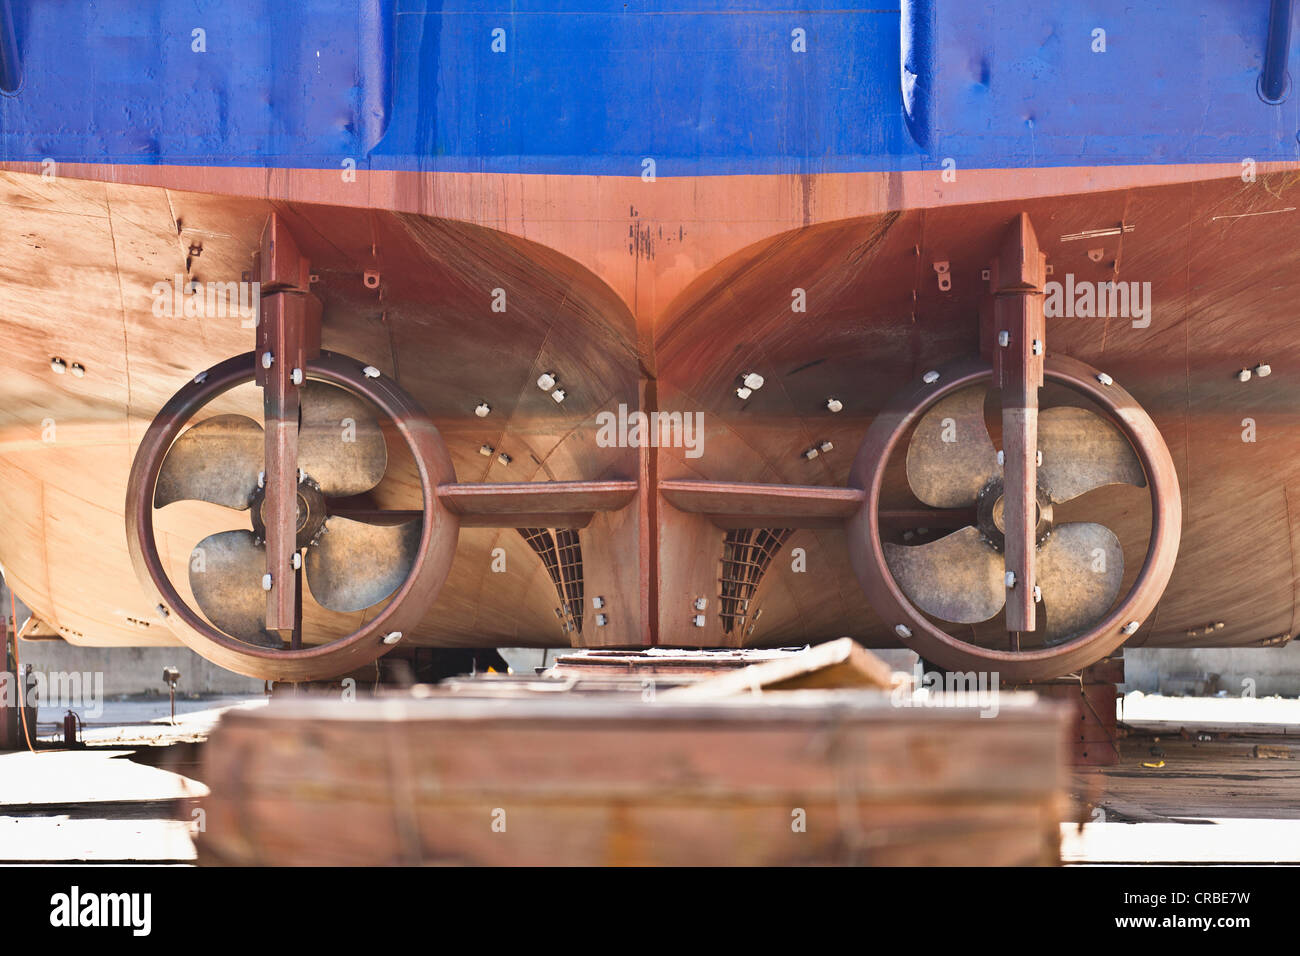 Propellers of ship on dry dock - Stock Image